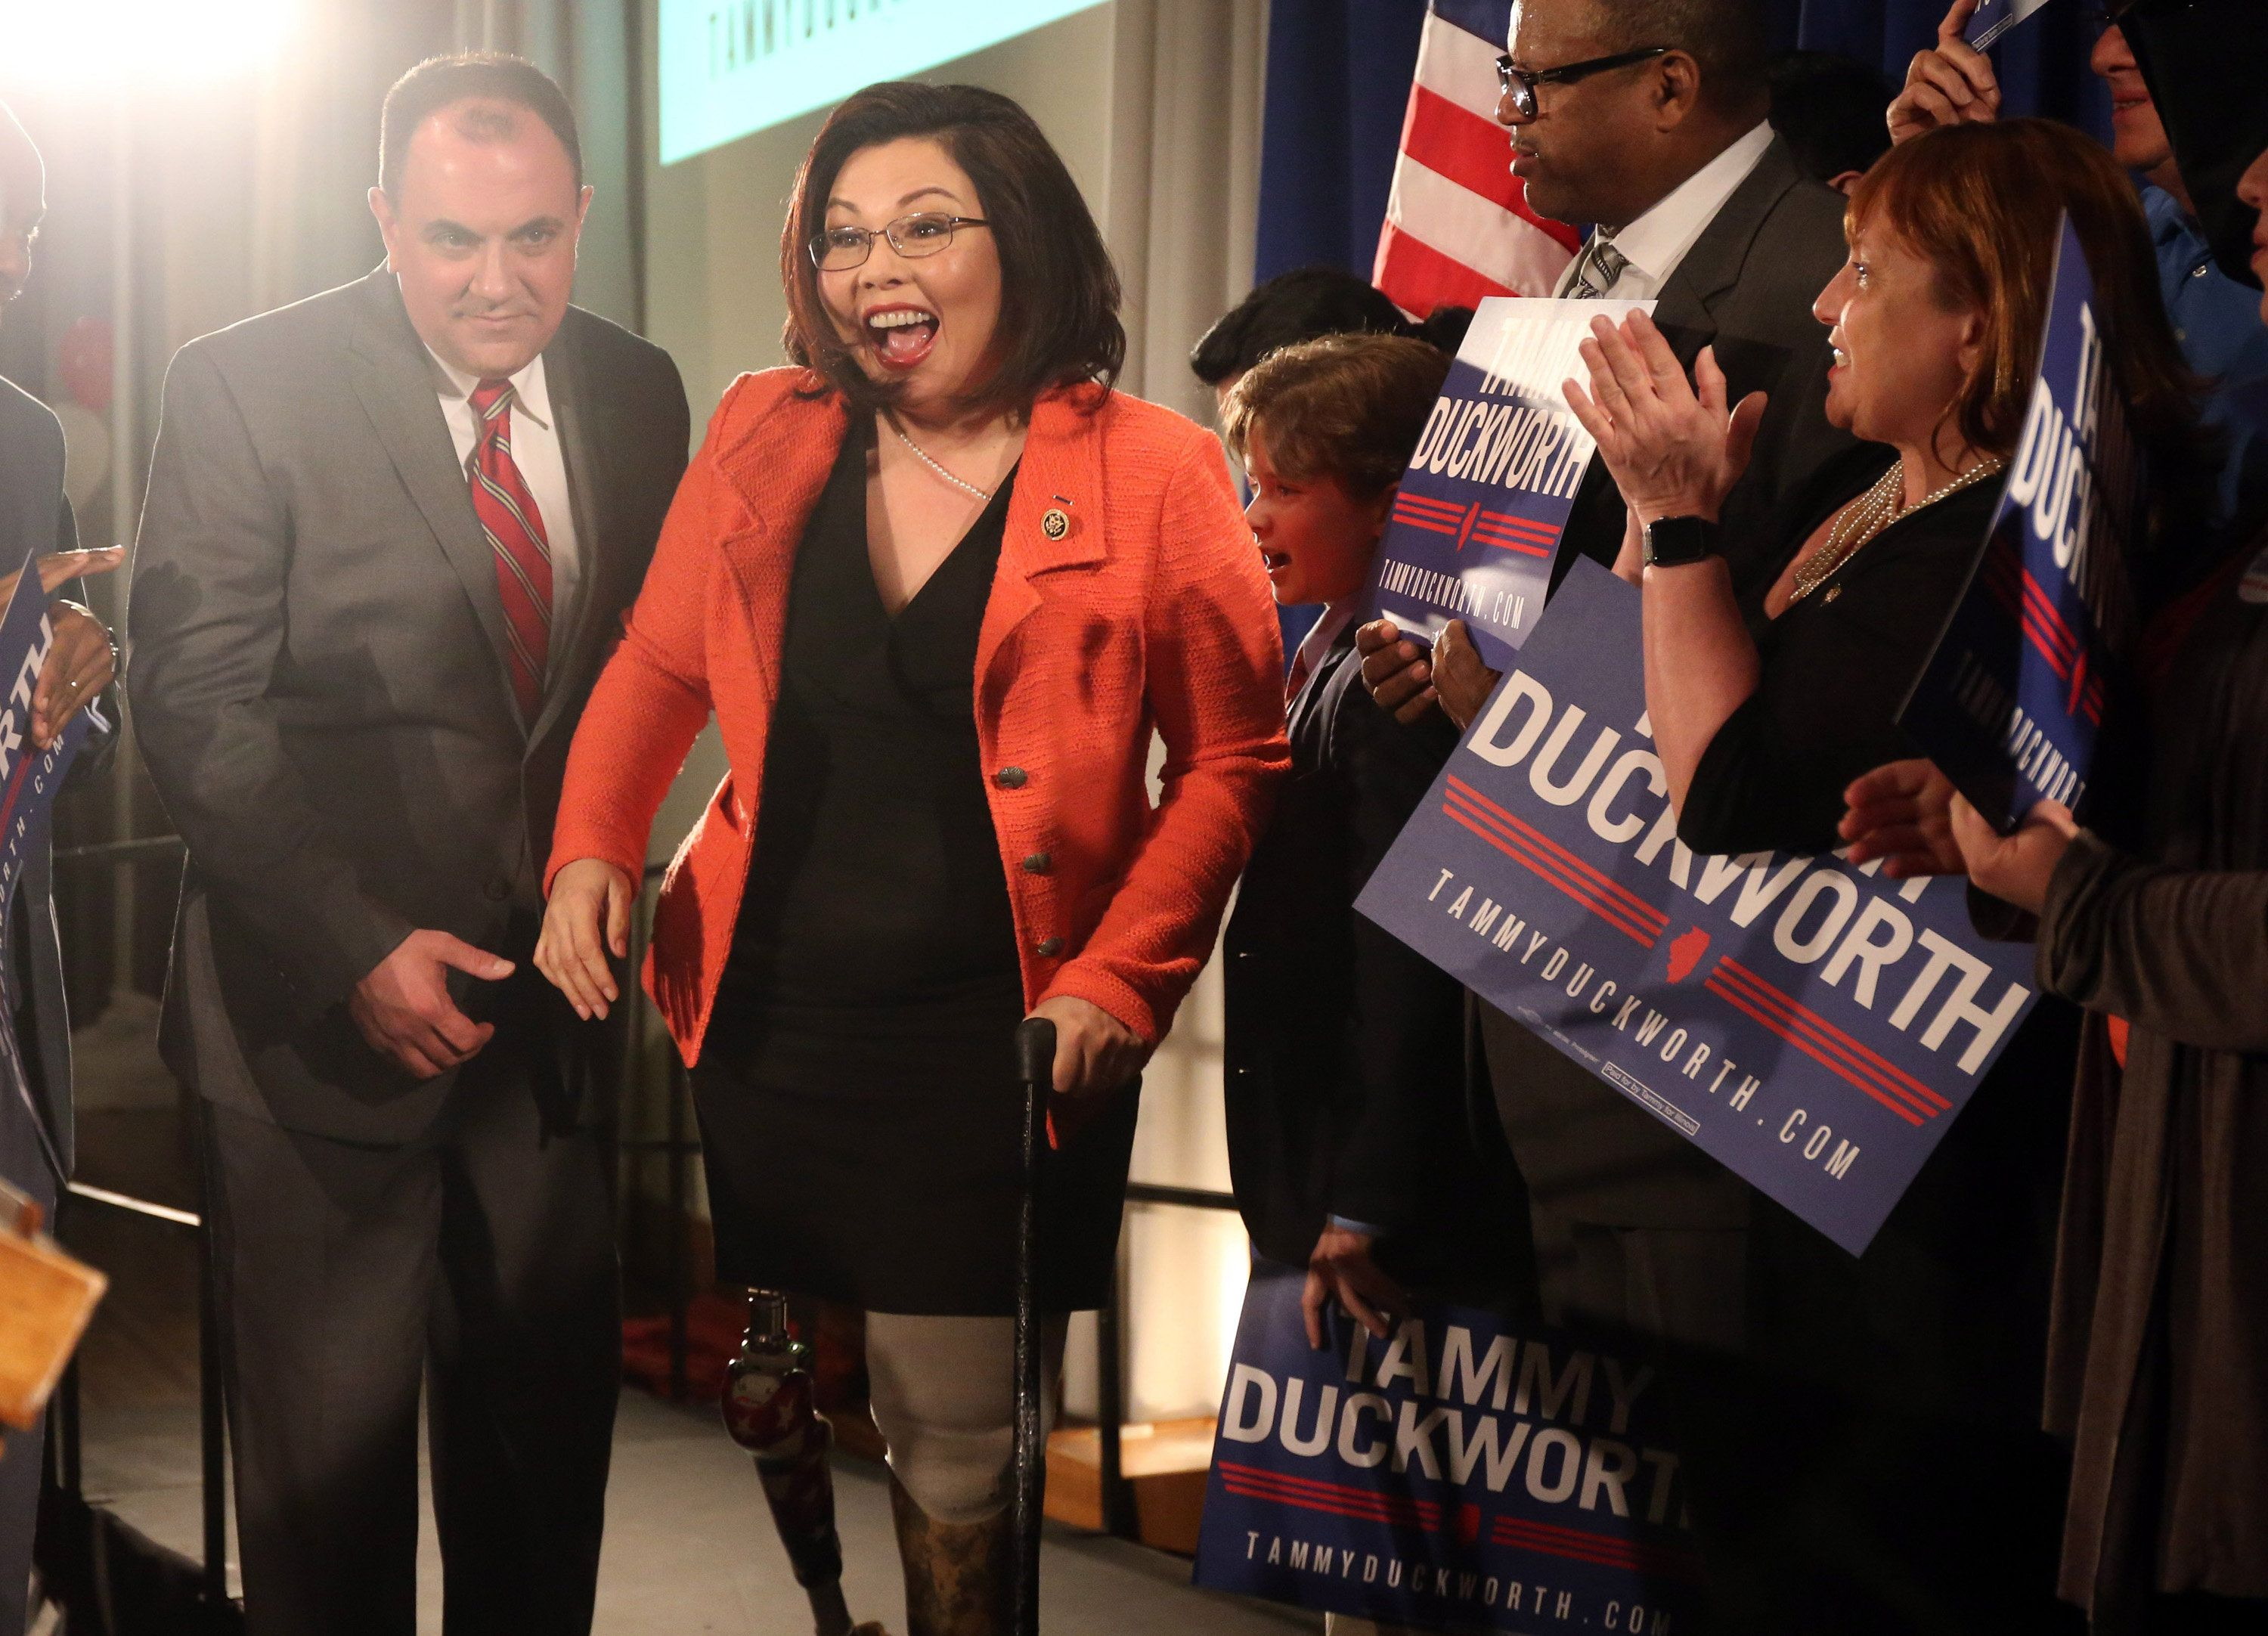 U.S. Rep. Tammy Duckworth celebrates on Tuesday, March 15, 2016, after her Democratic primary victory on election night at the Ivy Room in Chicago. (Brian Cassella/Chicago Tribune/TNS via Getty Images)